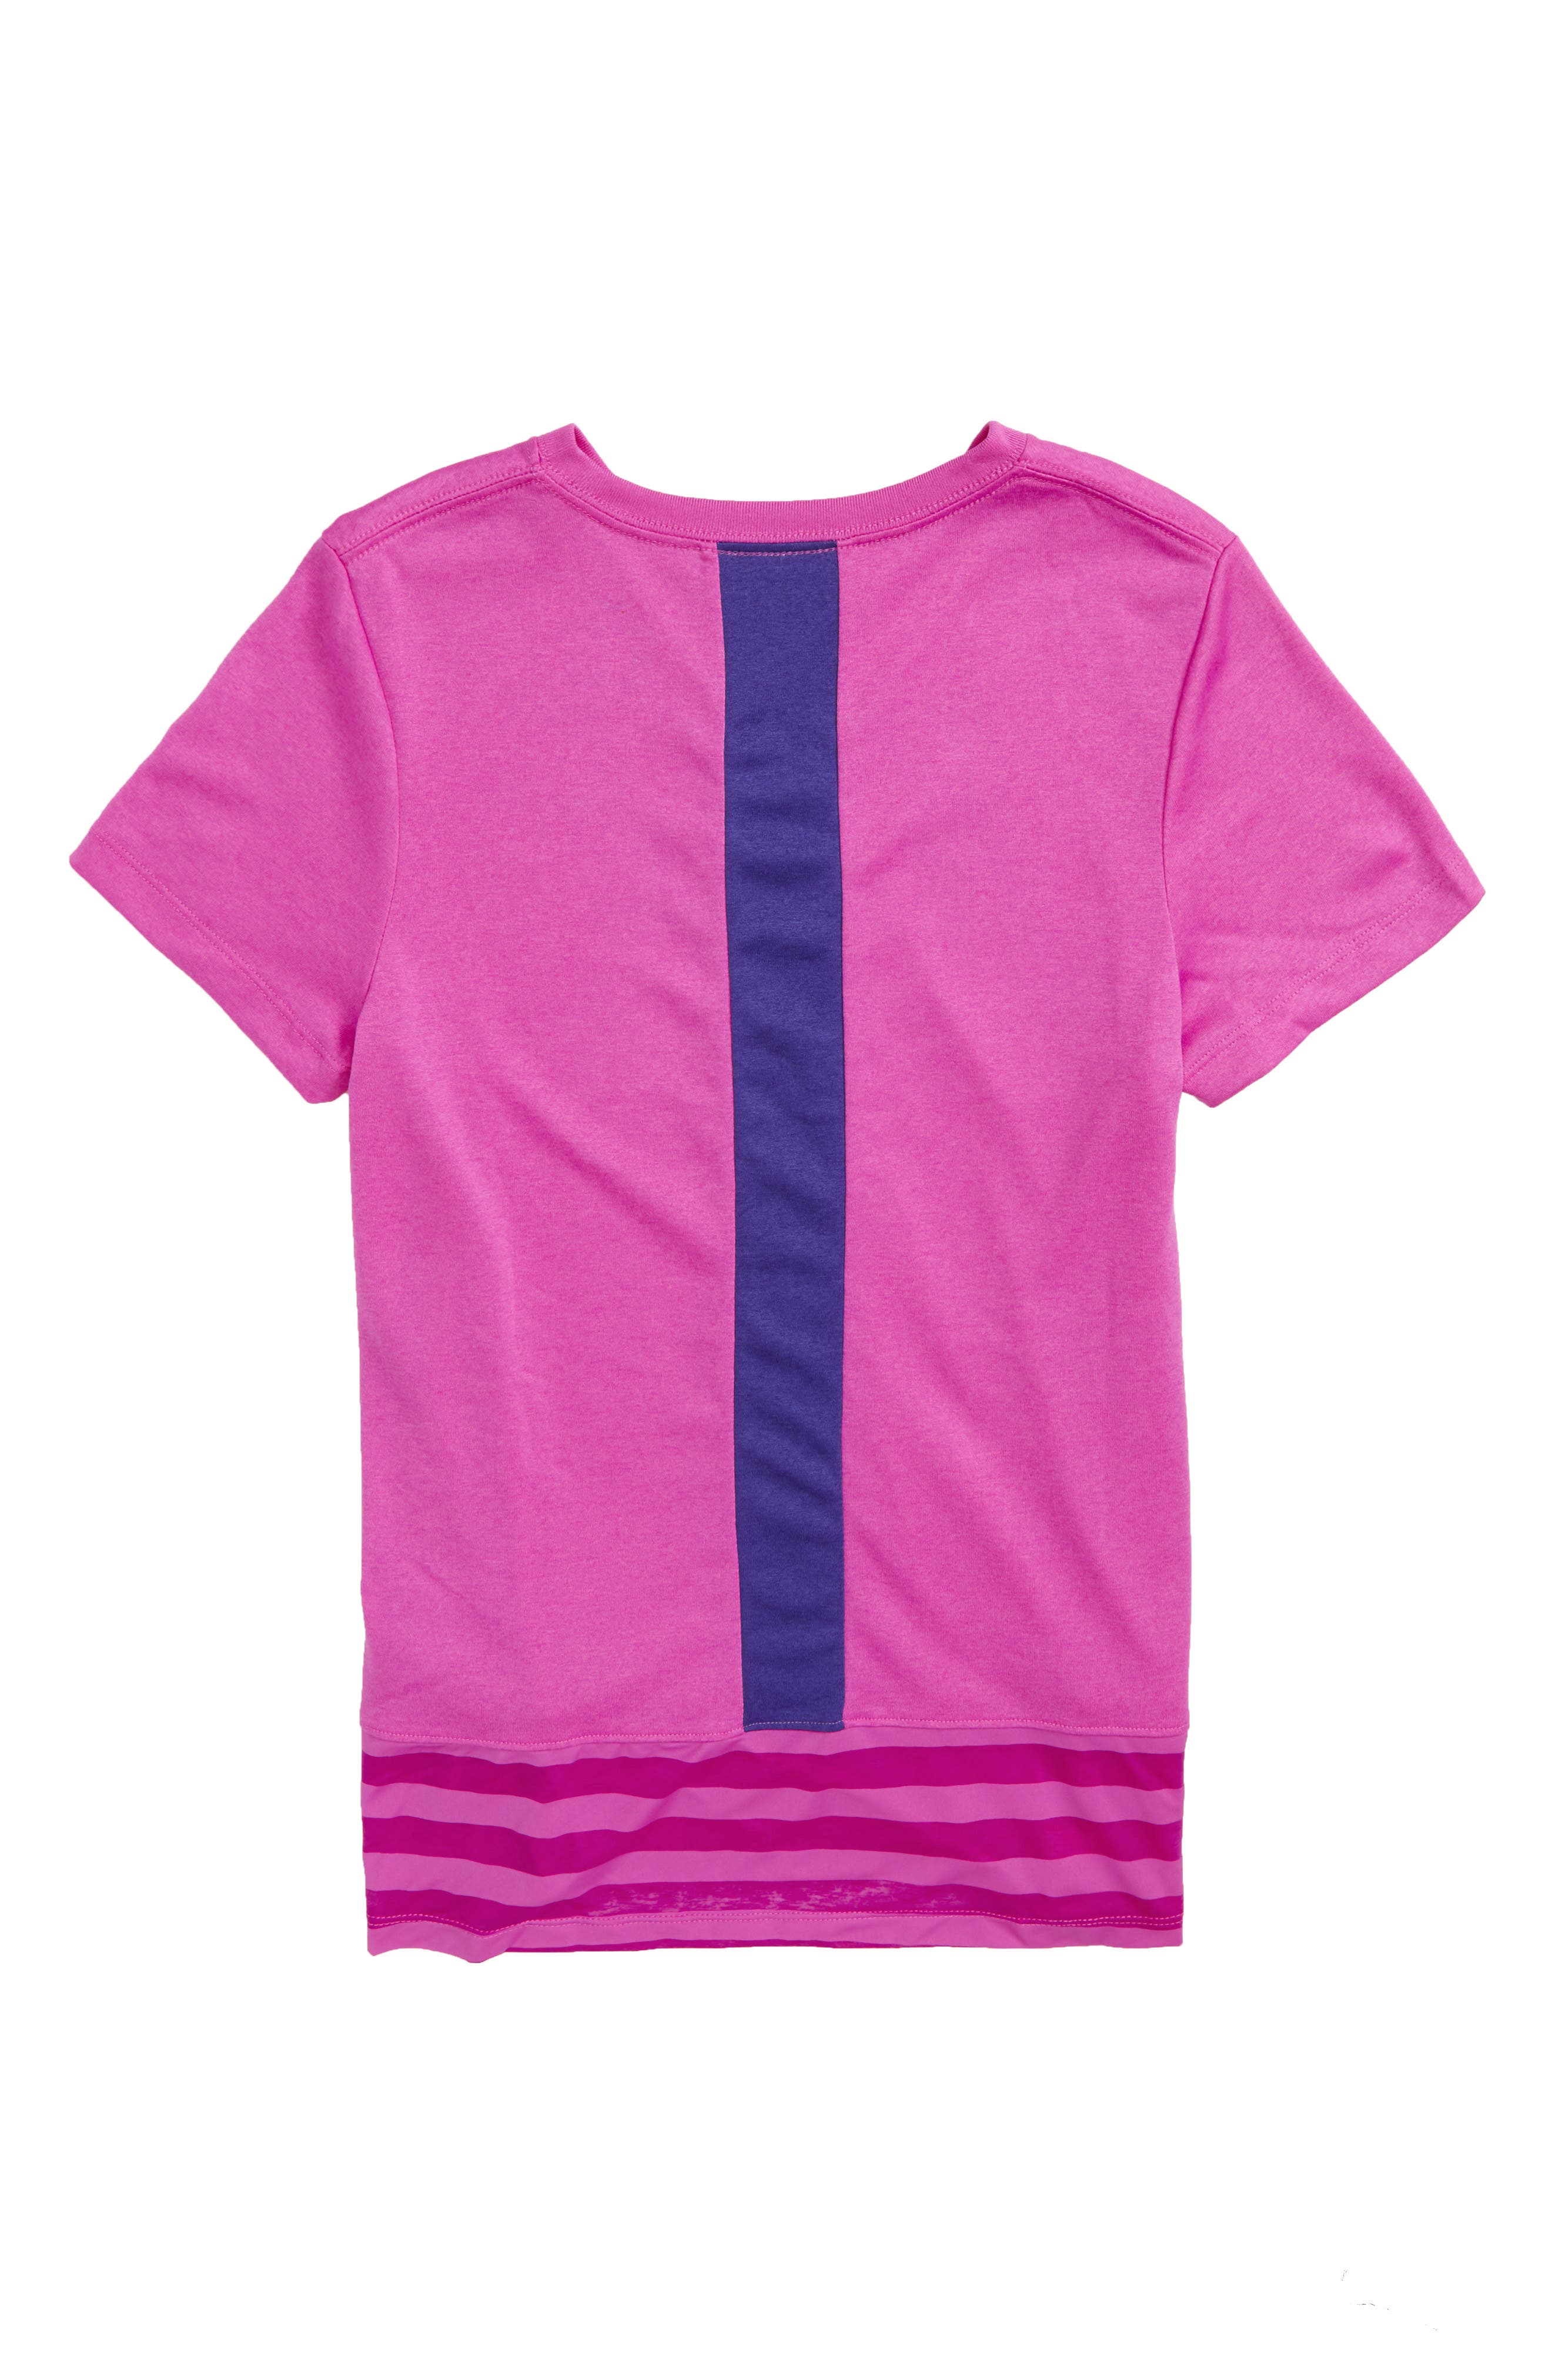 Dry Logo Graphic Tee,                             Alternate thumbnail 2, color,                             Hyper Magenta/ Fusion Violet